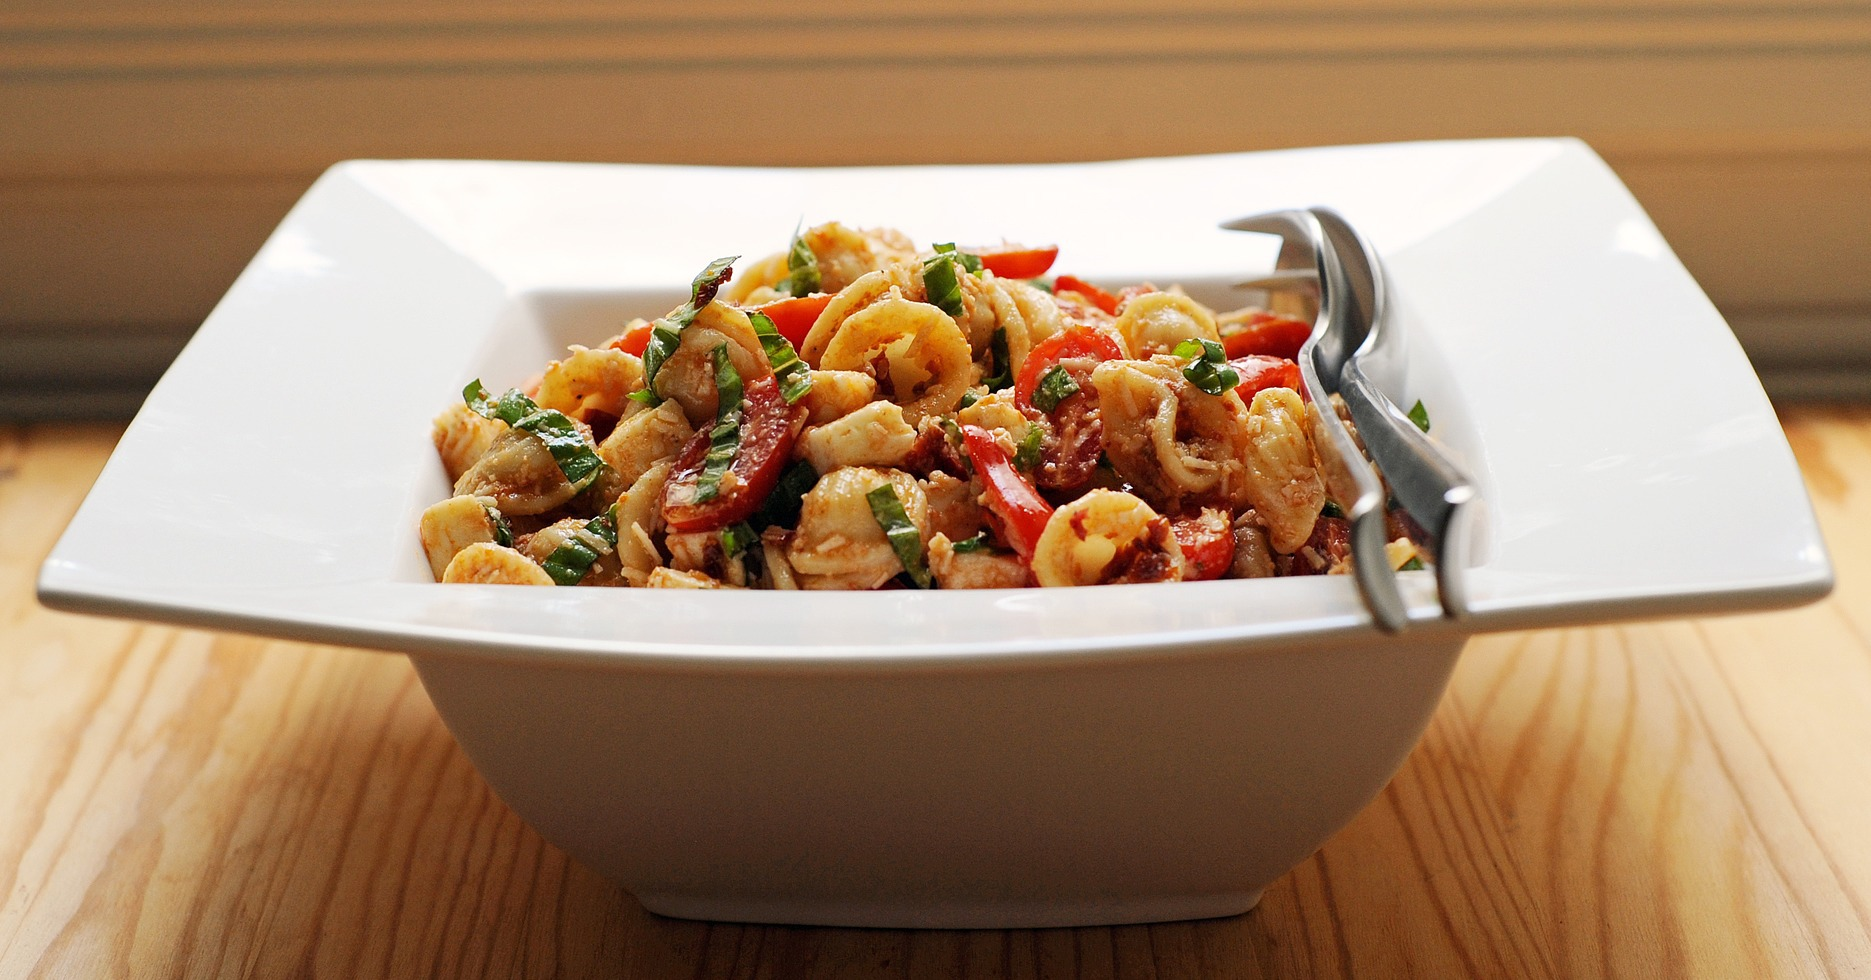 Sun-Dried Tomato Pasta Salad | POPSUGAR Food